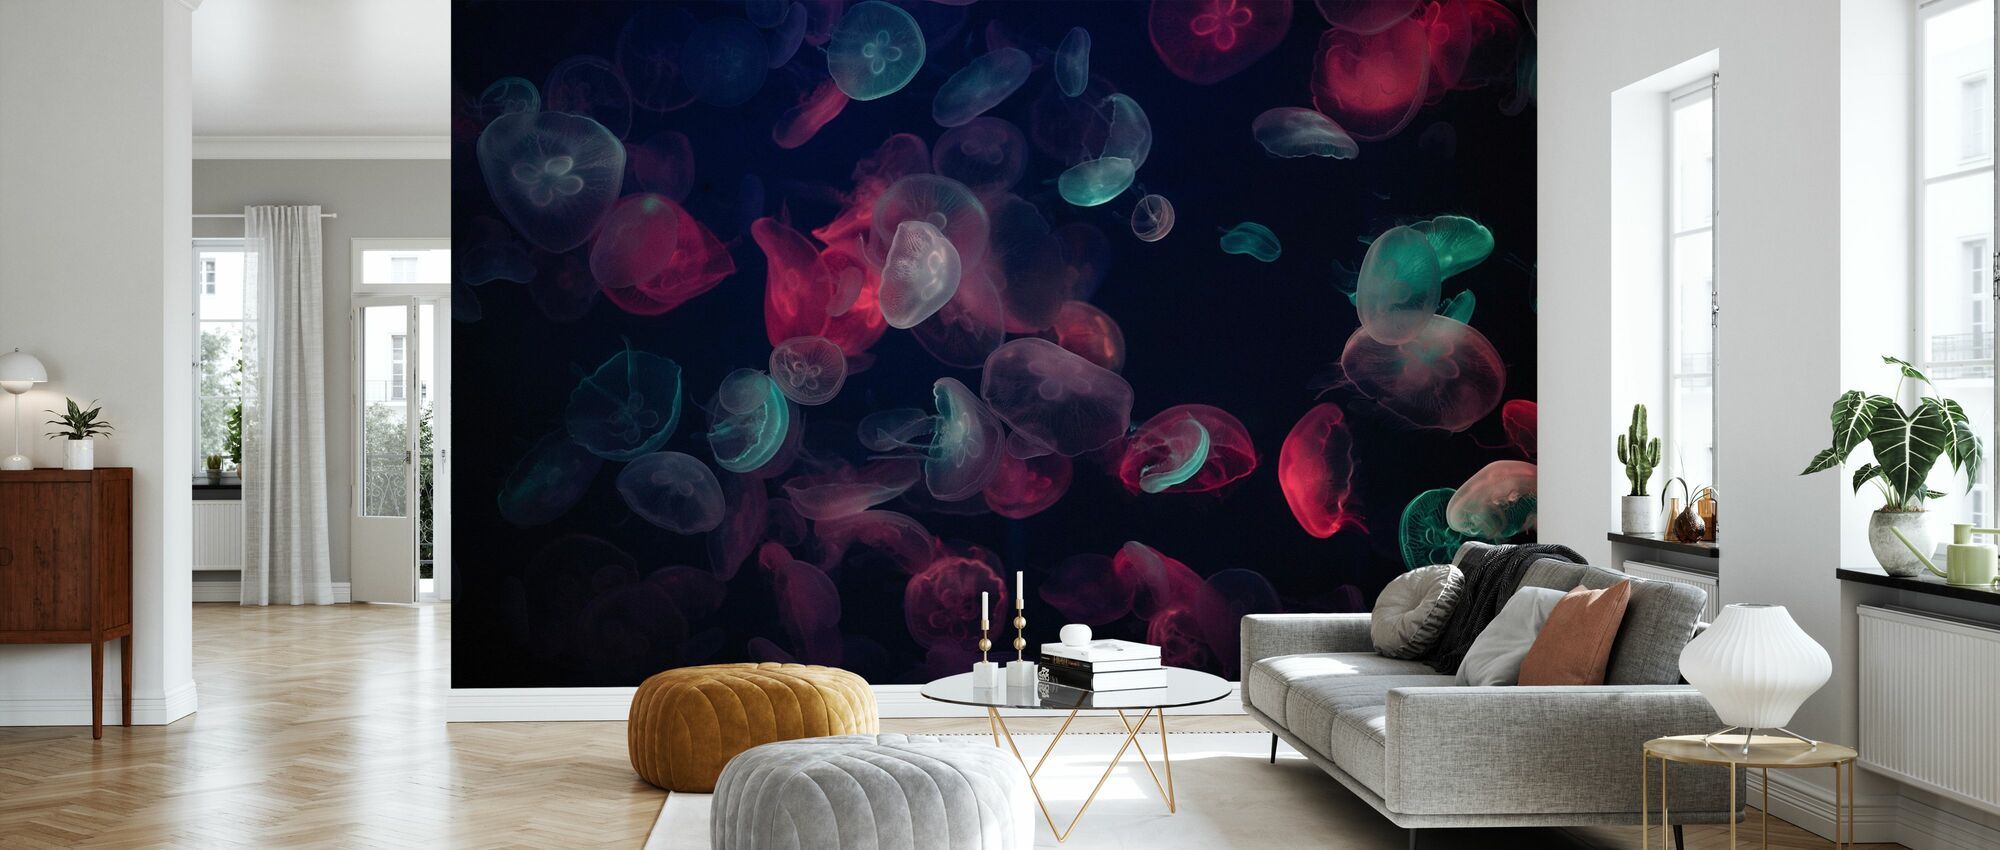 Jellyfish - Wallpaper - Living Room